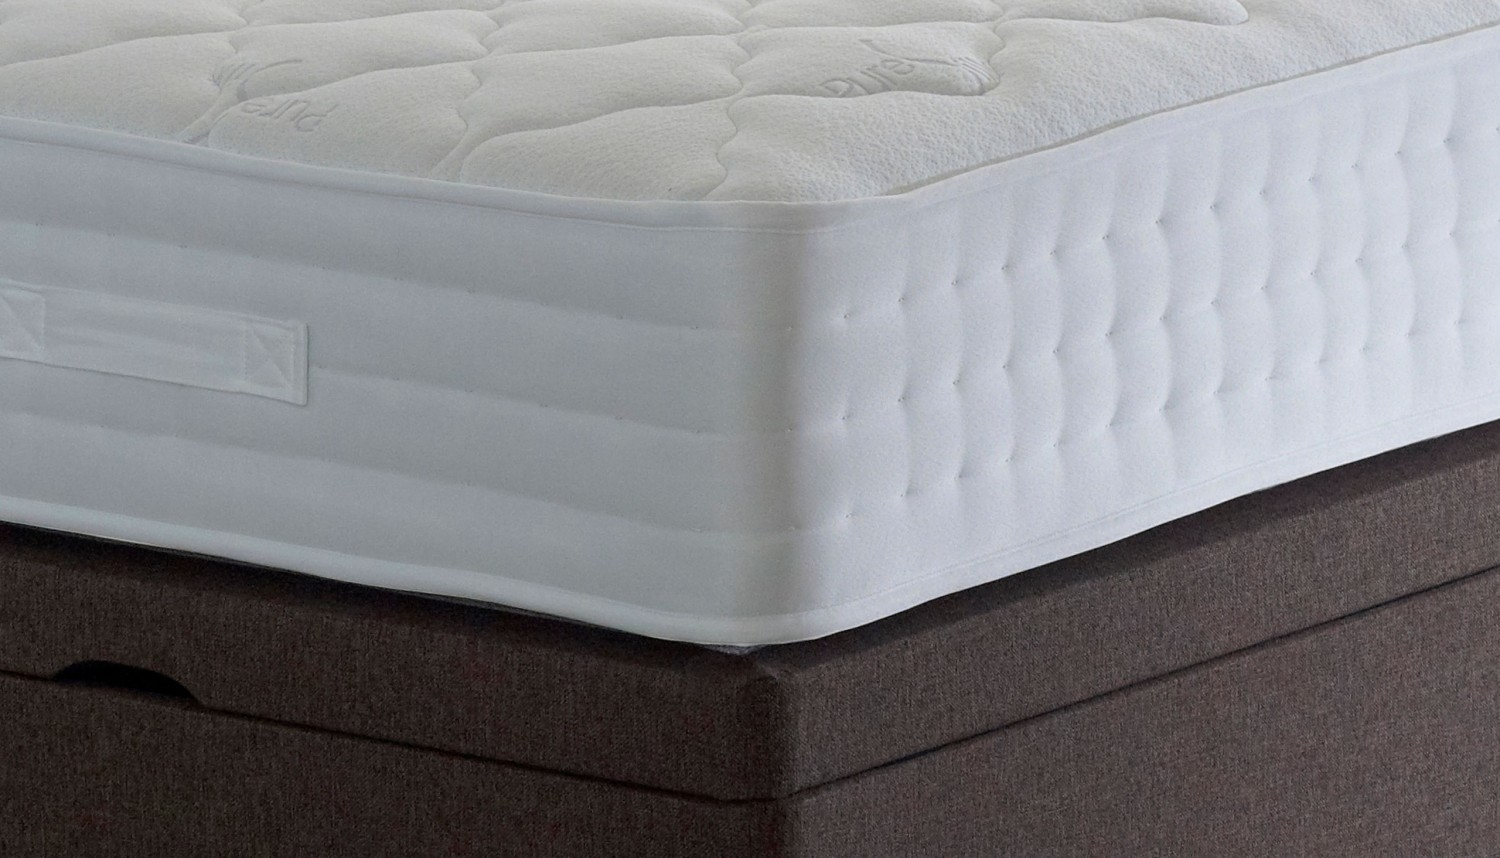 Highgrove Bed Brand Beds Divans Mattresses Ahf Pertaining To Highgrove Mirrors (Image 4 of 15)